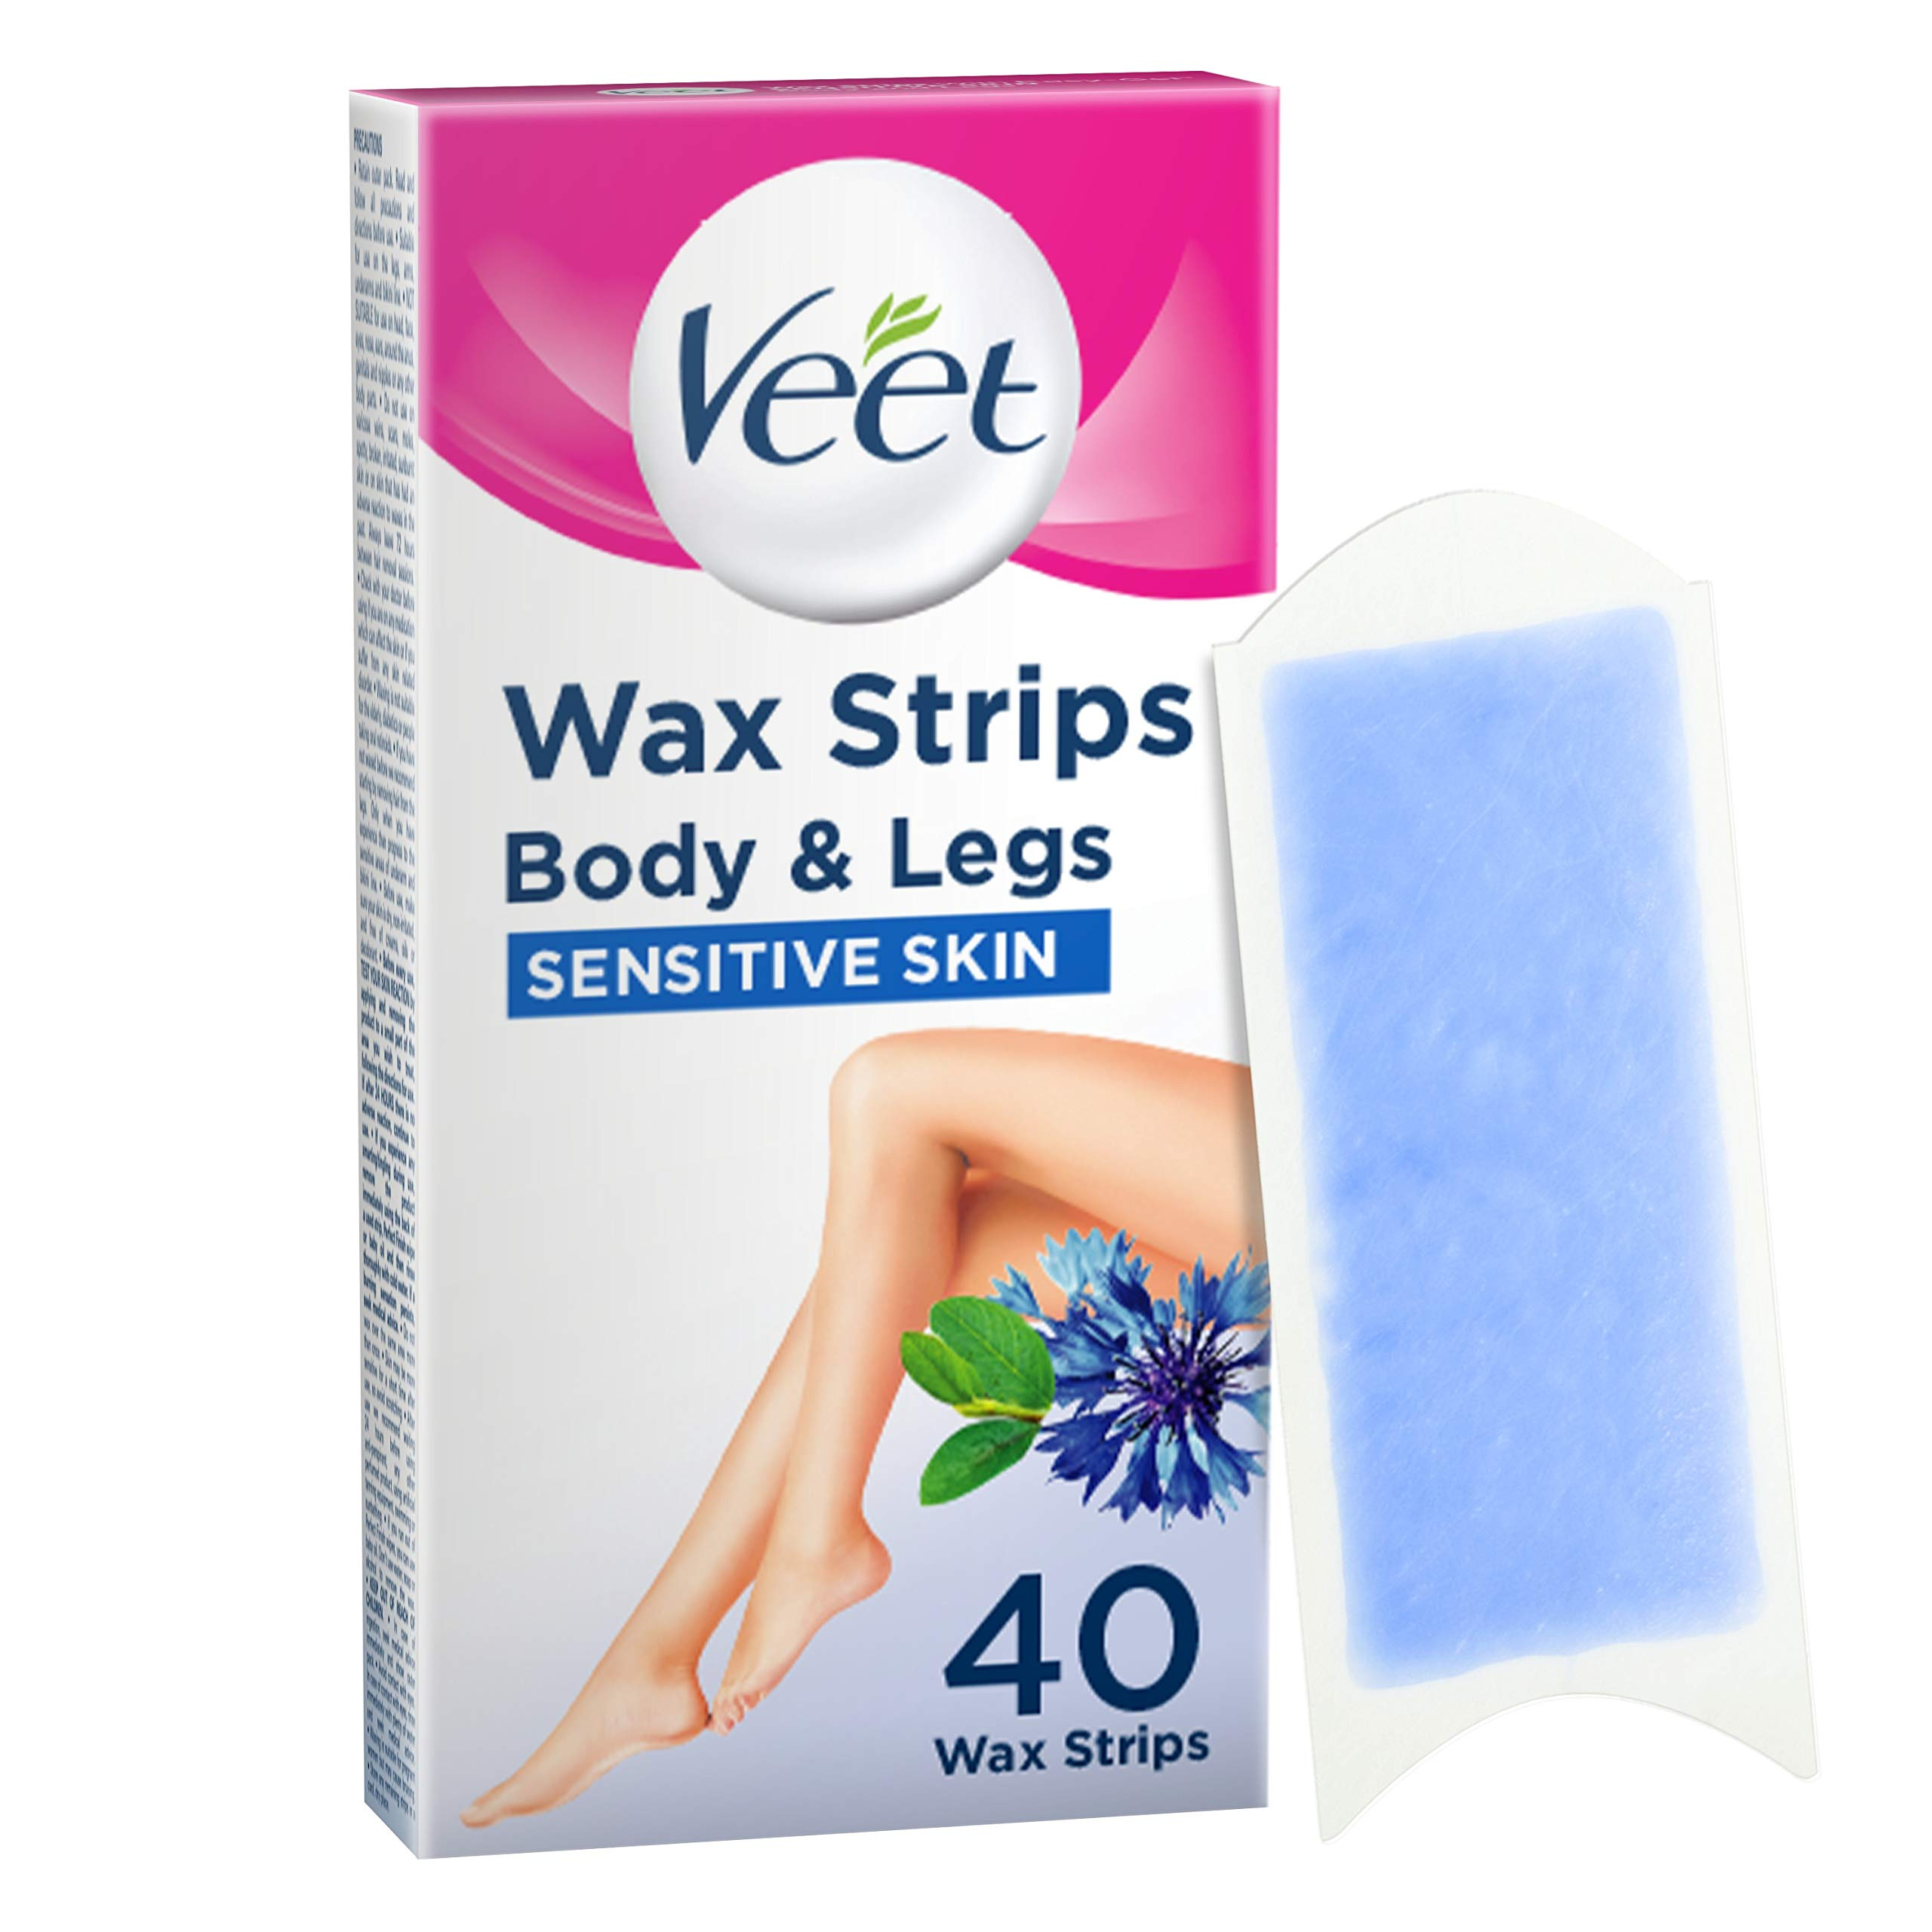 Veet Wax Strips for Sensitive Skin for Body and Legs, 20 Double Sided Strips, Pack of 40 (Packaging May Vary)